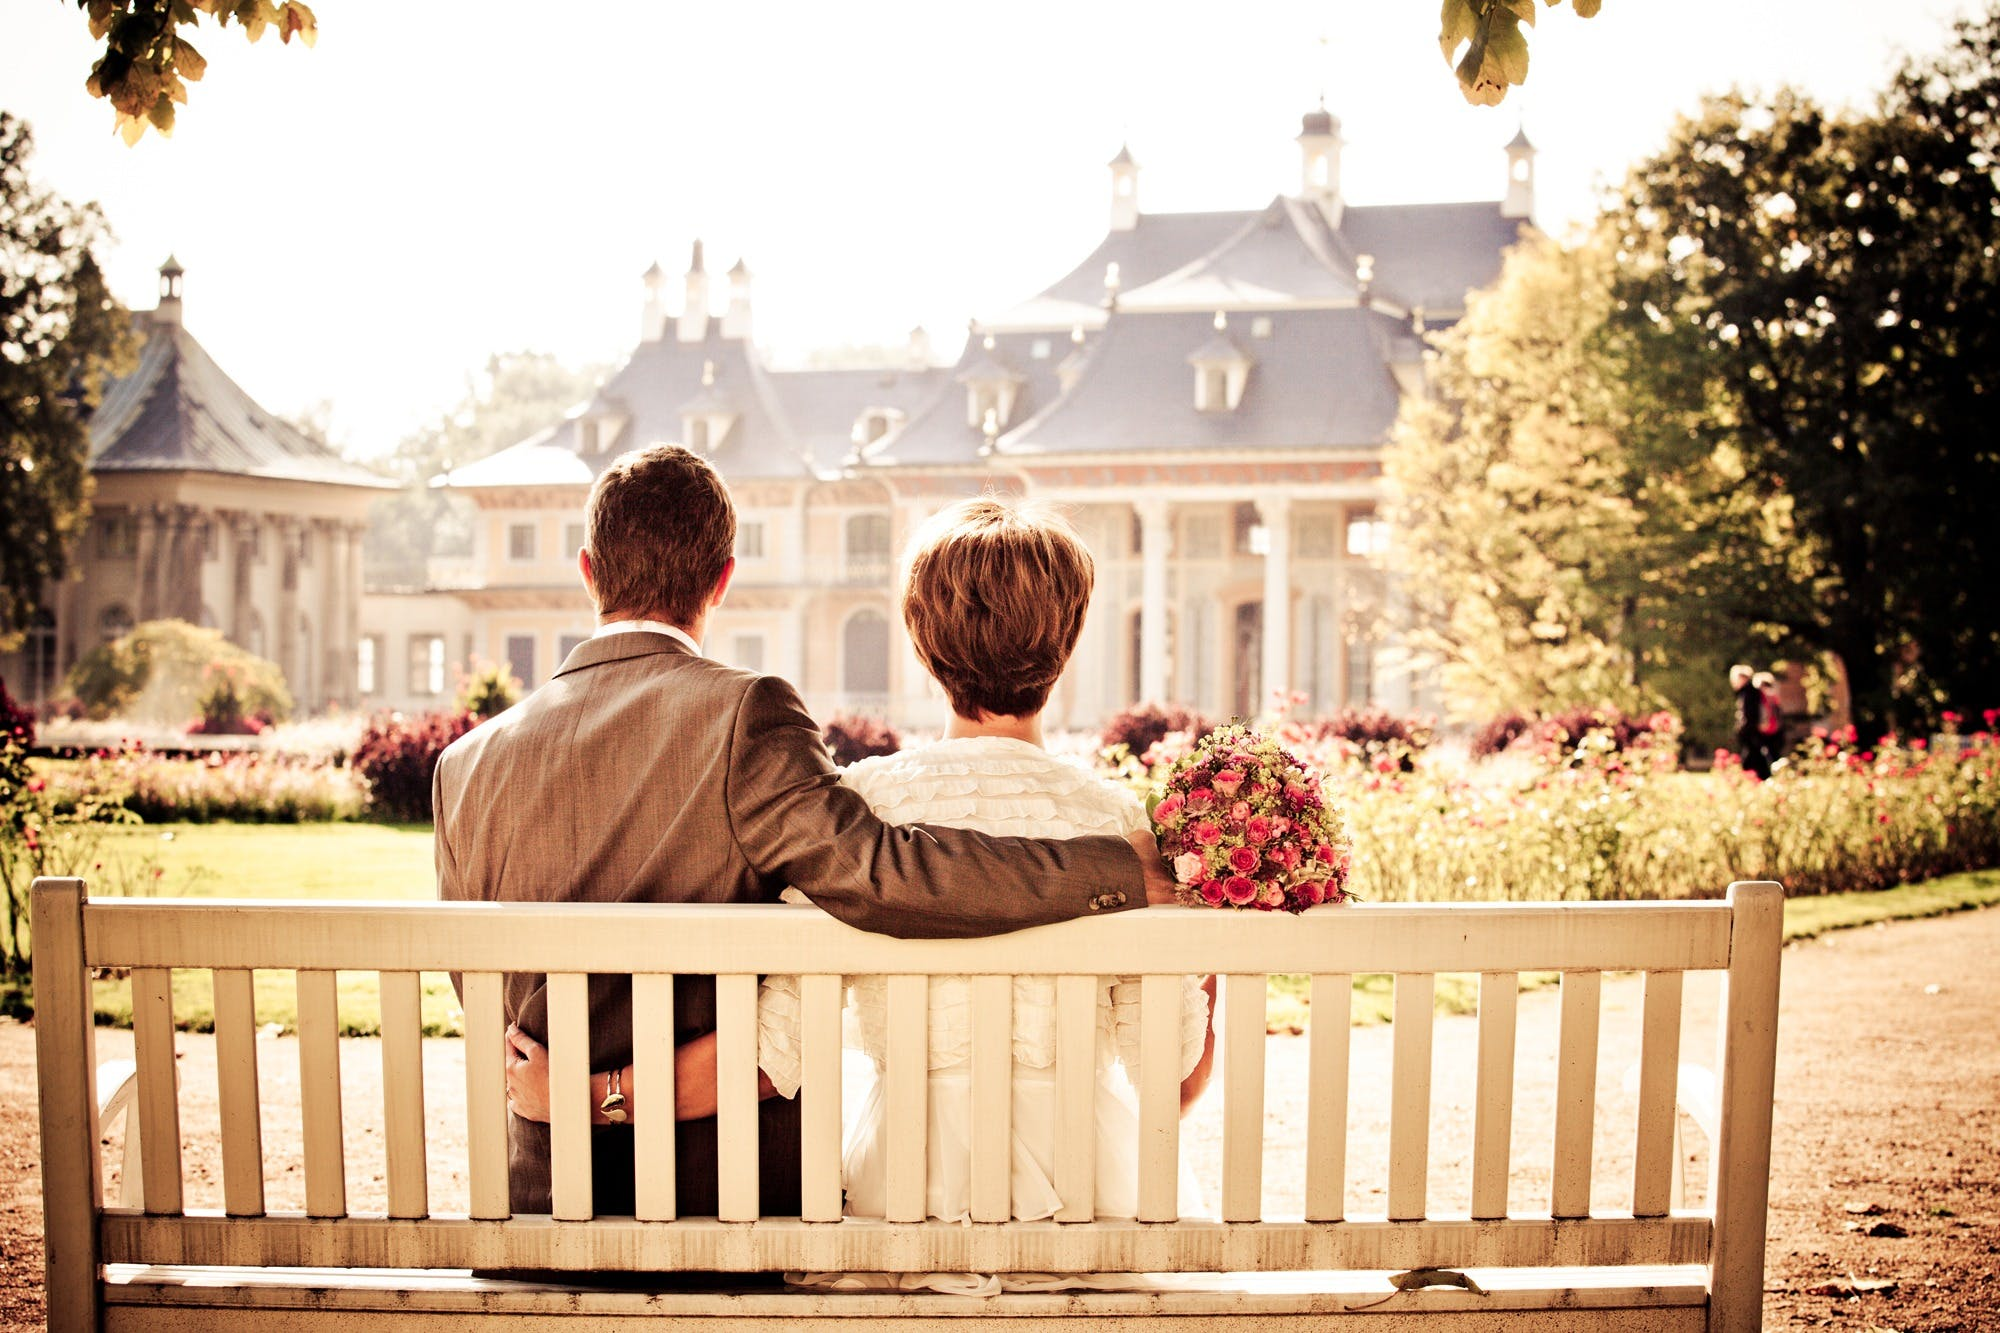 Couple Sitting on Wooden Bench While Watching White and Blue House